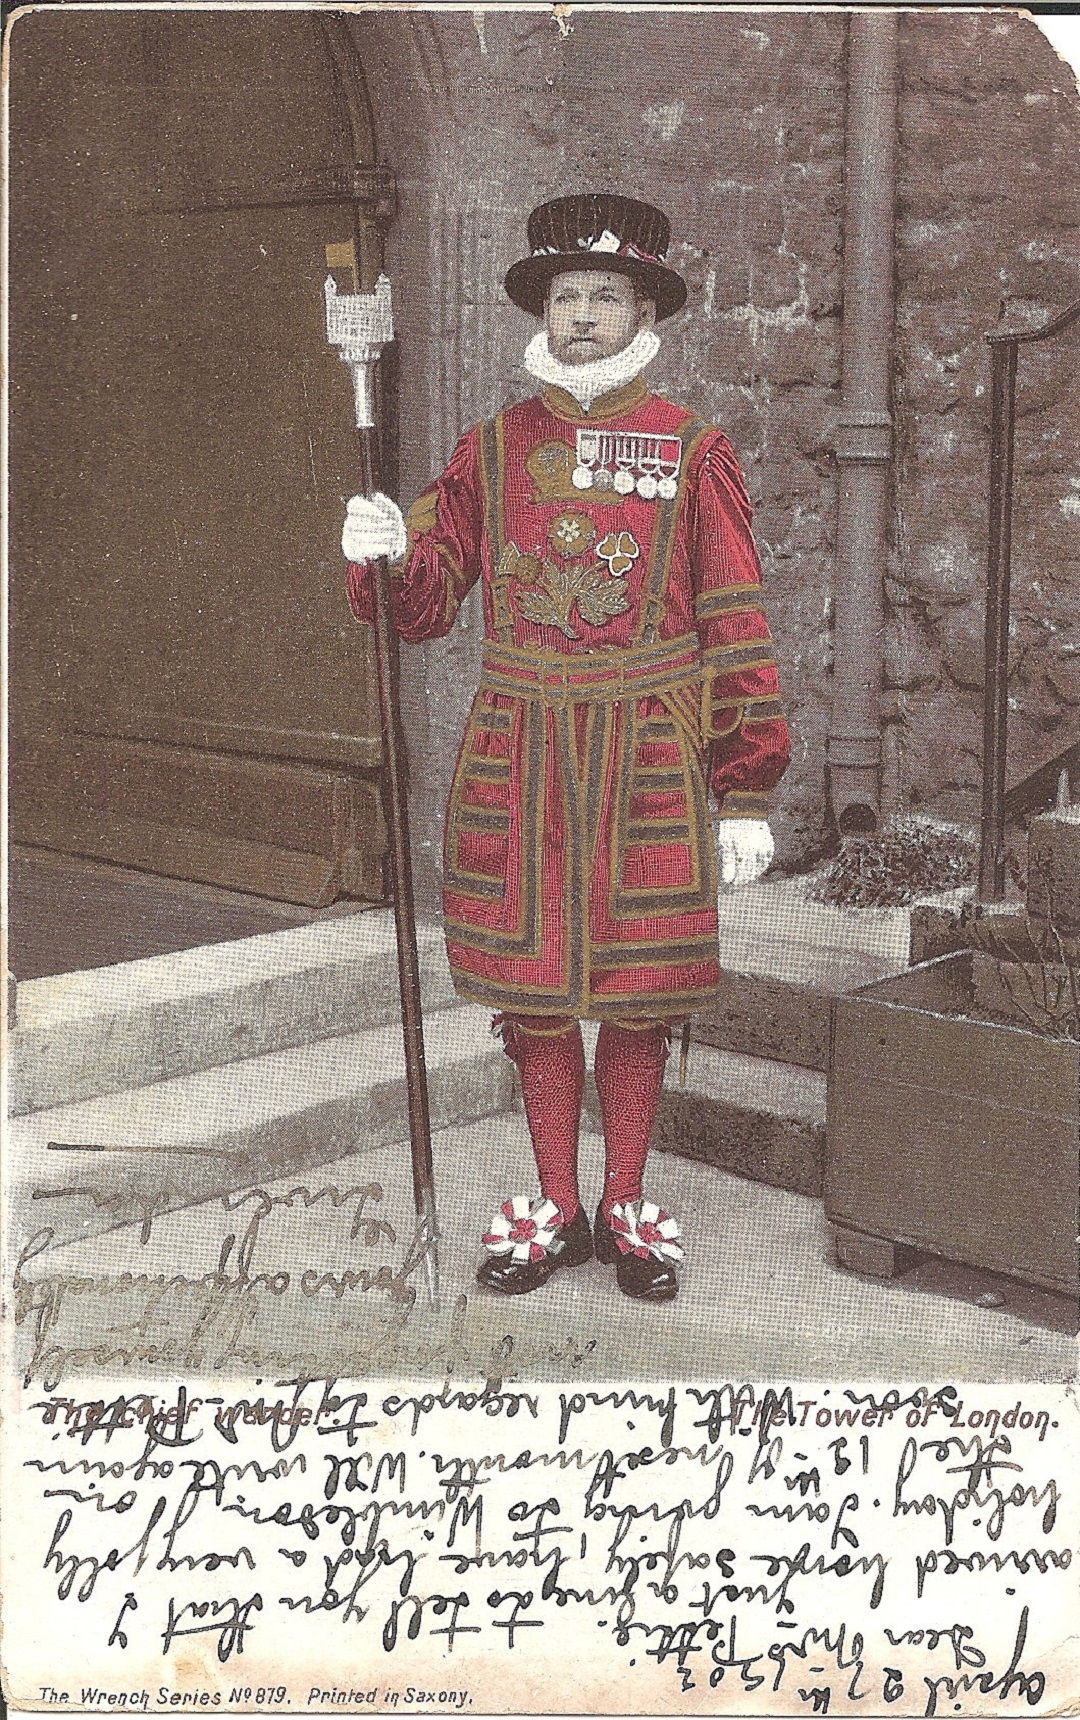 A postcard with a Uniformed Beefeater standing to attention in front of some stairs. There is a hand written message at the bottom of the card.